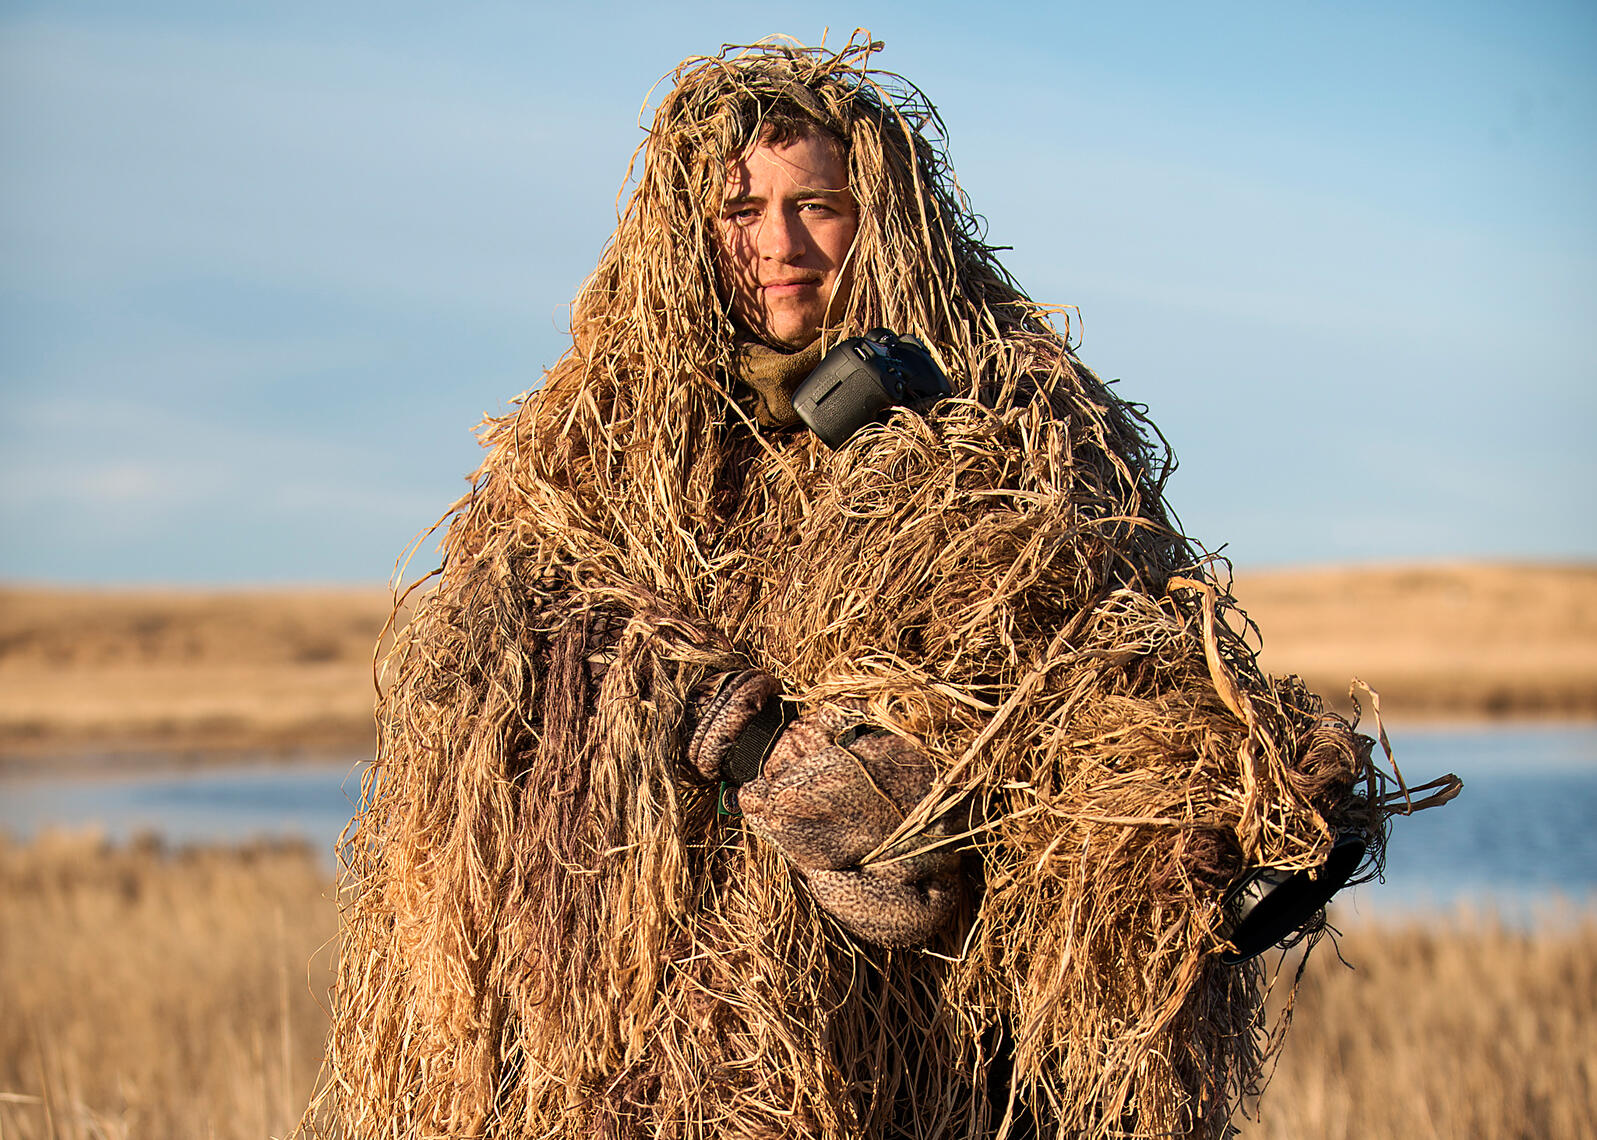 Adam Grimm in a ghillie suit that he uses for camouflage as he photographs the wild ducks in Eureka, South Dakota. Wild ducks are extremely wary of humans and will not come anywhere near a human who they can see. Jon Lowenstein